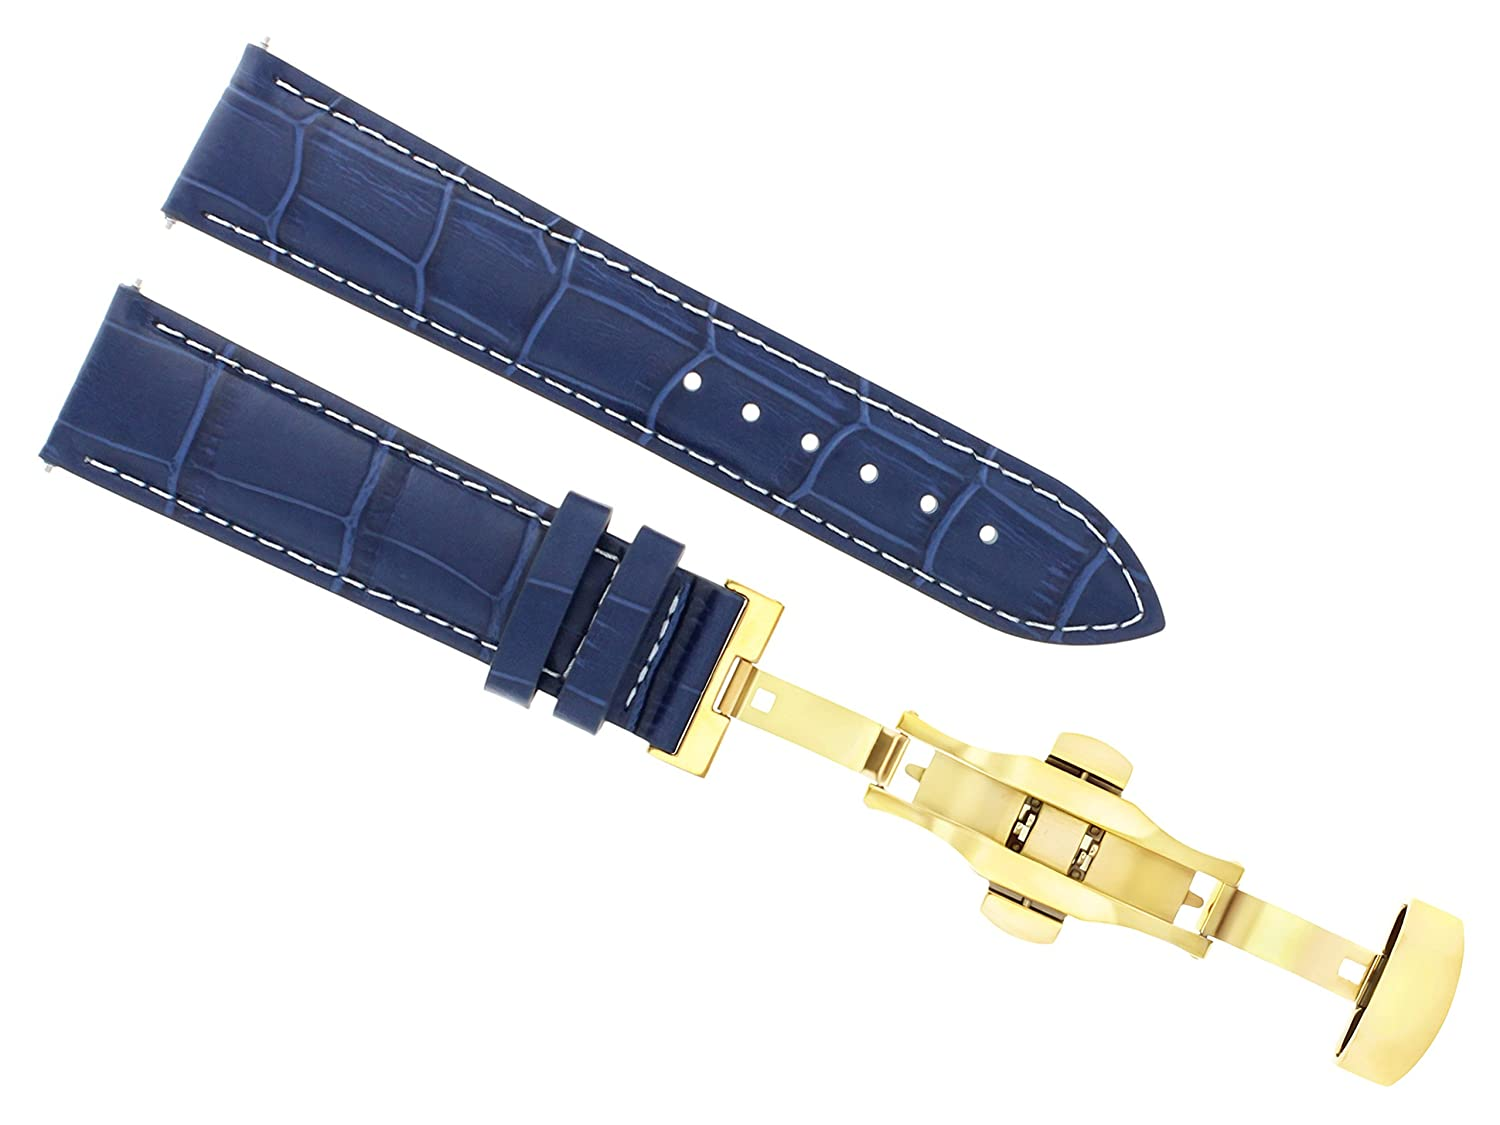 18 – 19 – 20 – 21 – 22 – 23 – 24 mmレザーバンドDeployment Clasp for MONTBLANC 3bゴールド 22mm Blue with white stitching  Blue with white stitching 22mm B07DHMSDJM